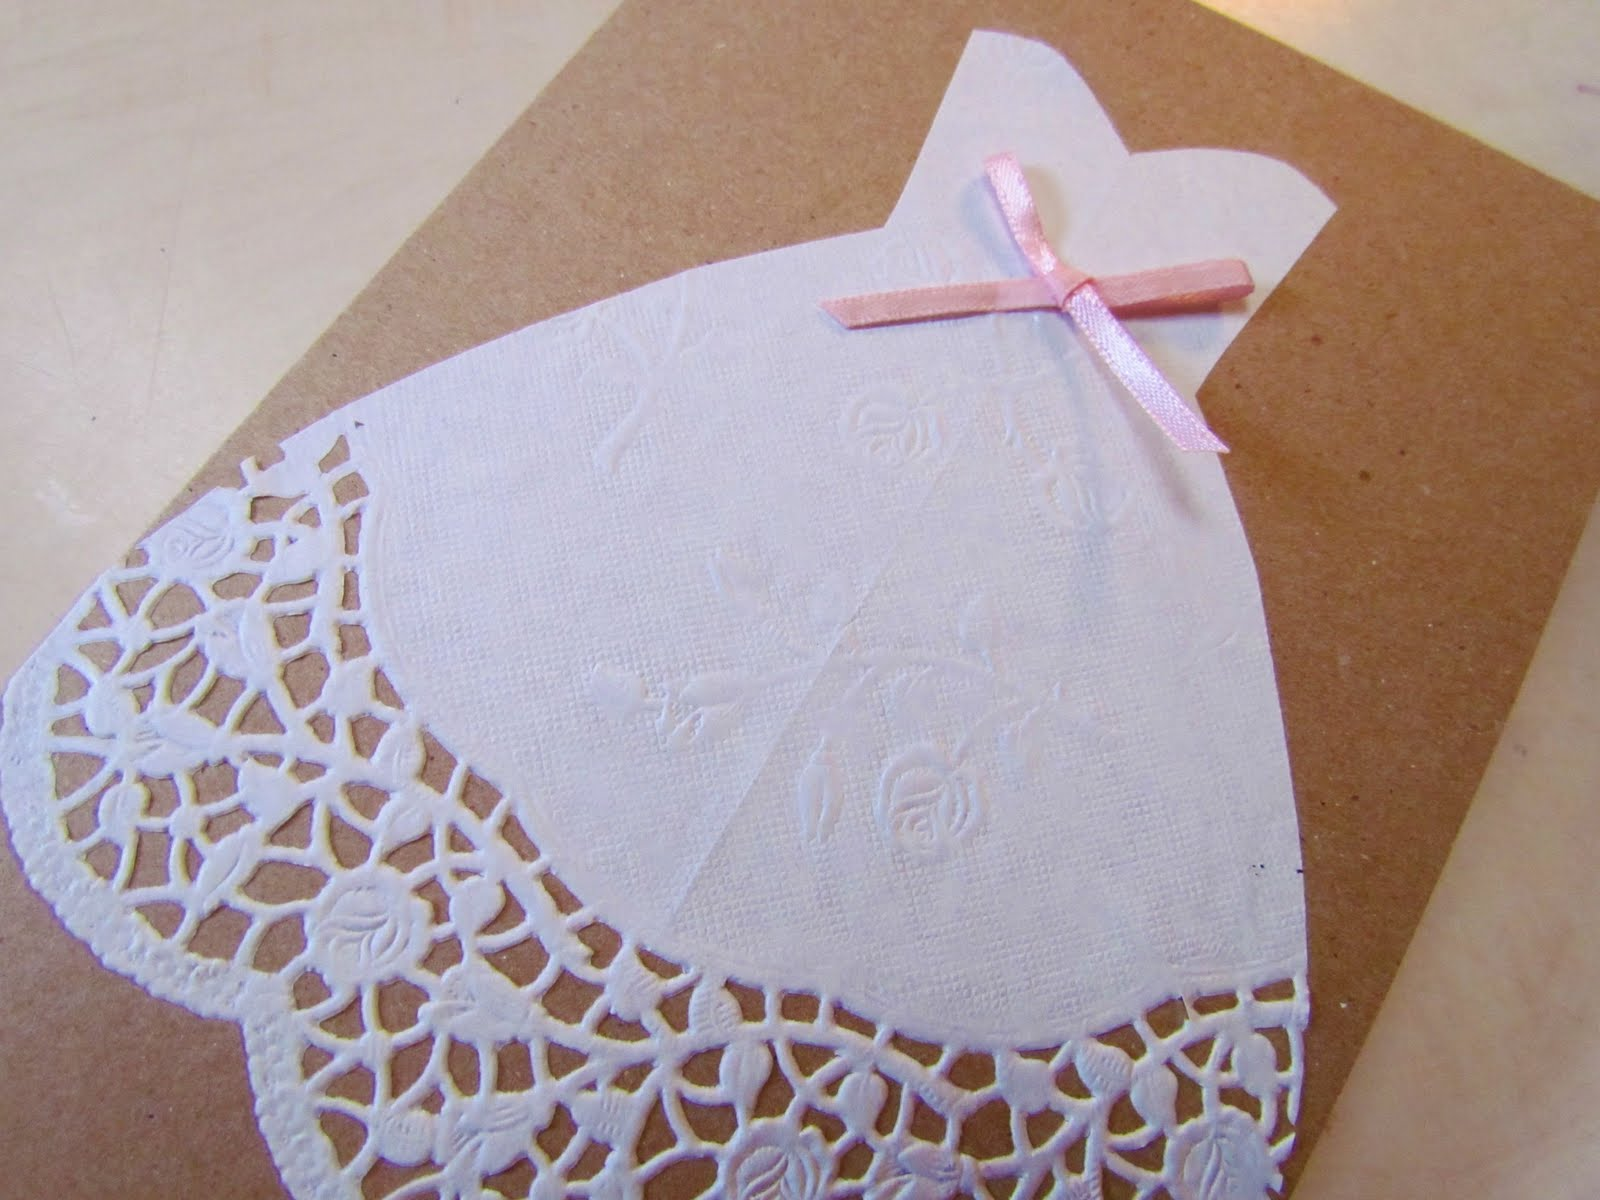 twobutterflies: Easy DIY Bridal Shower Card